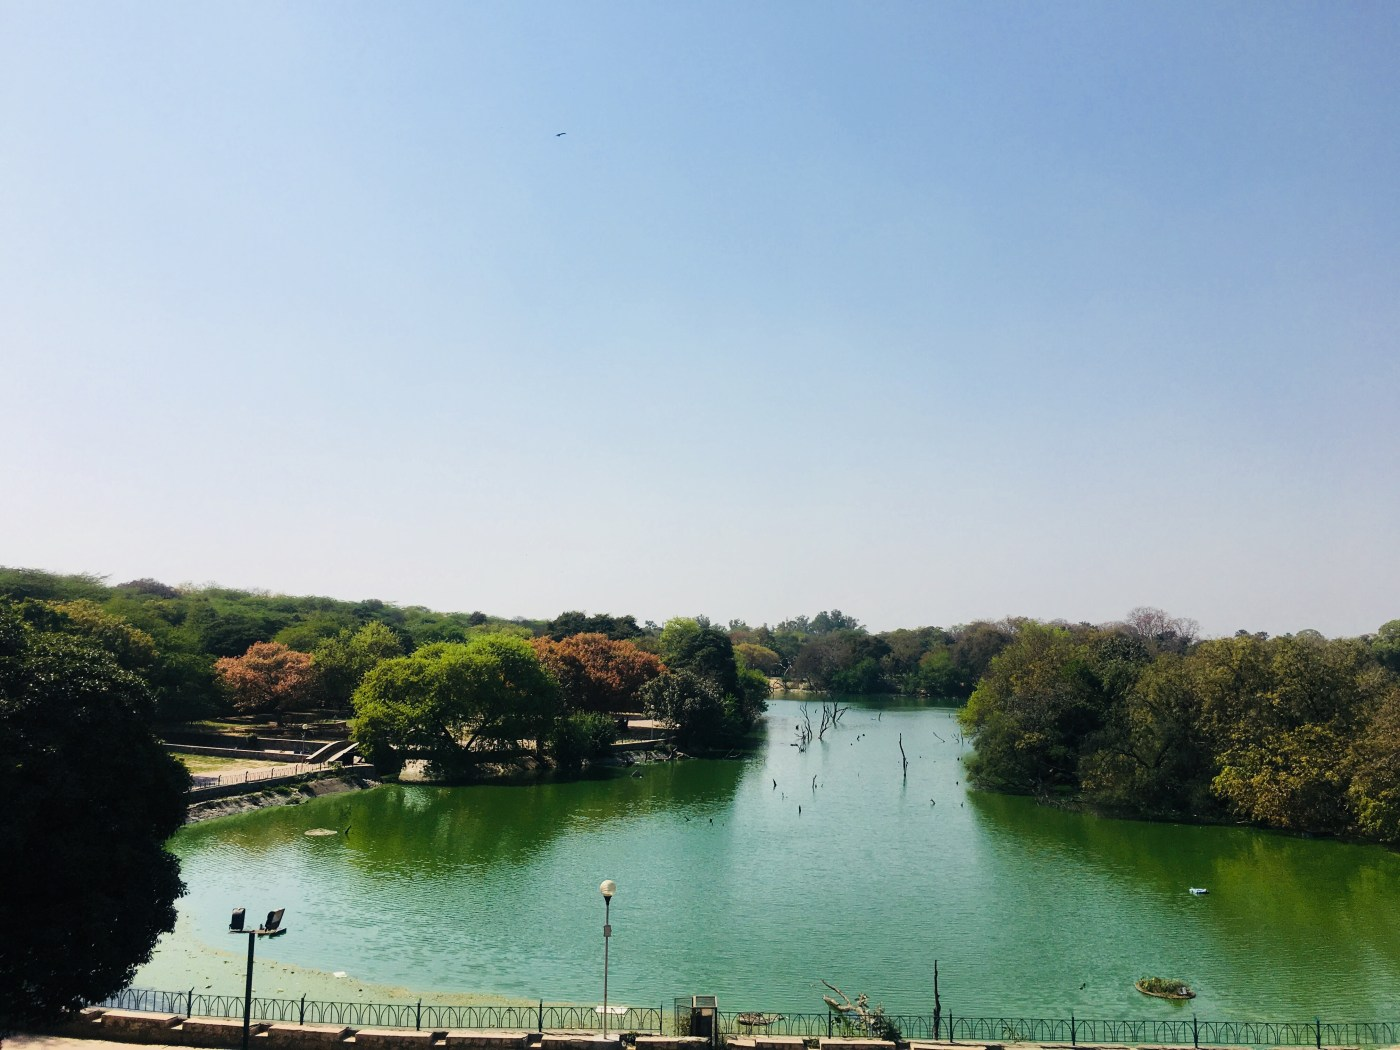 The Lake at the Hauz Khas Fort